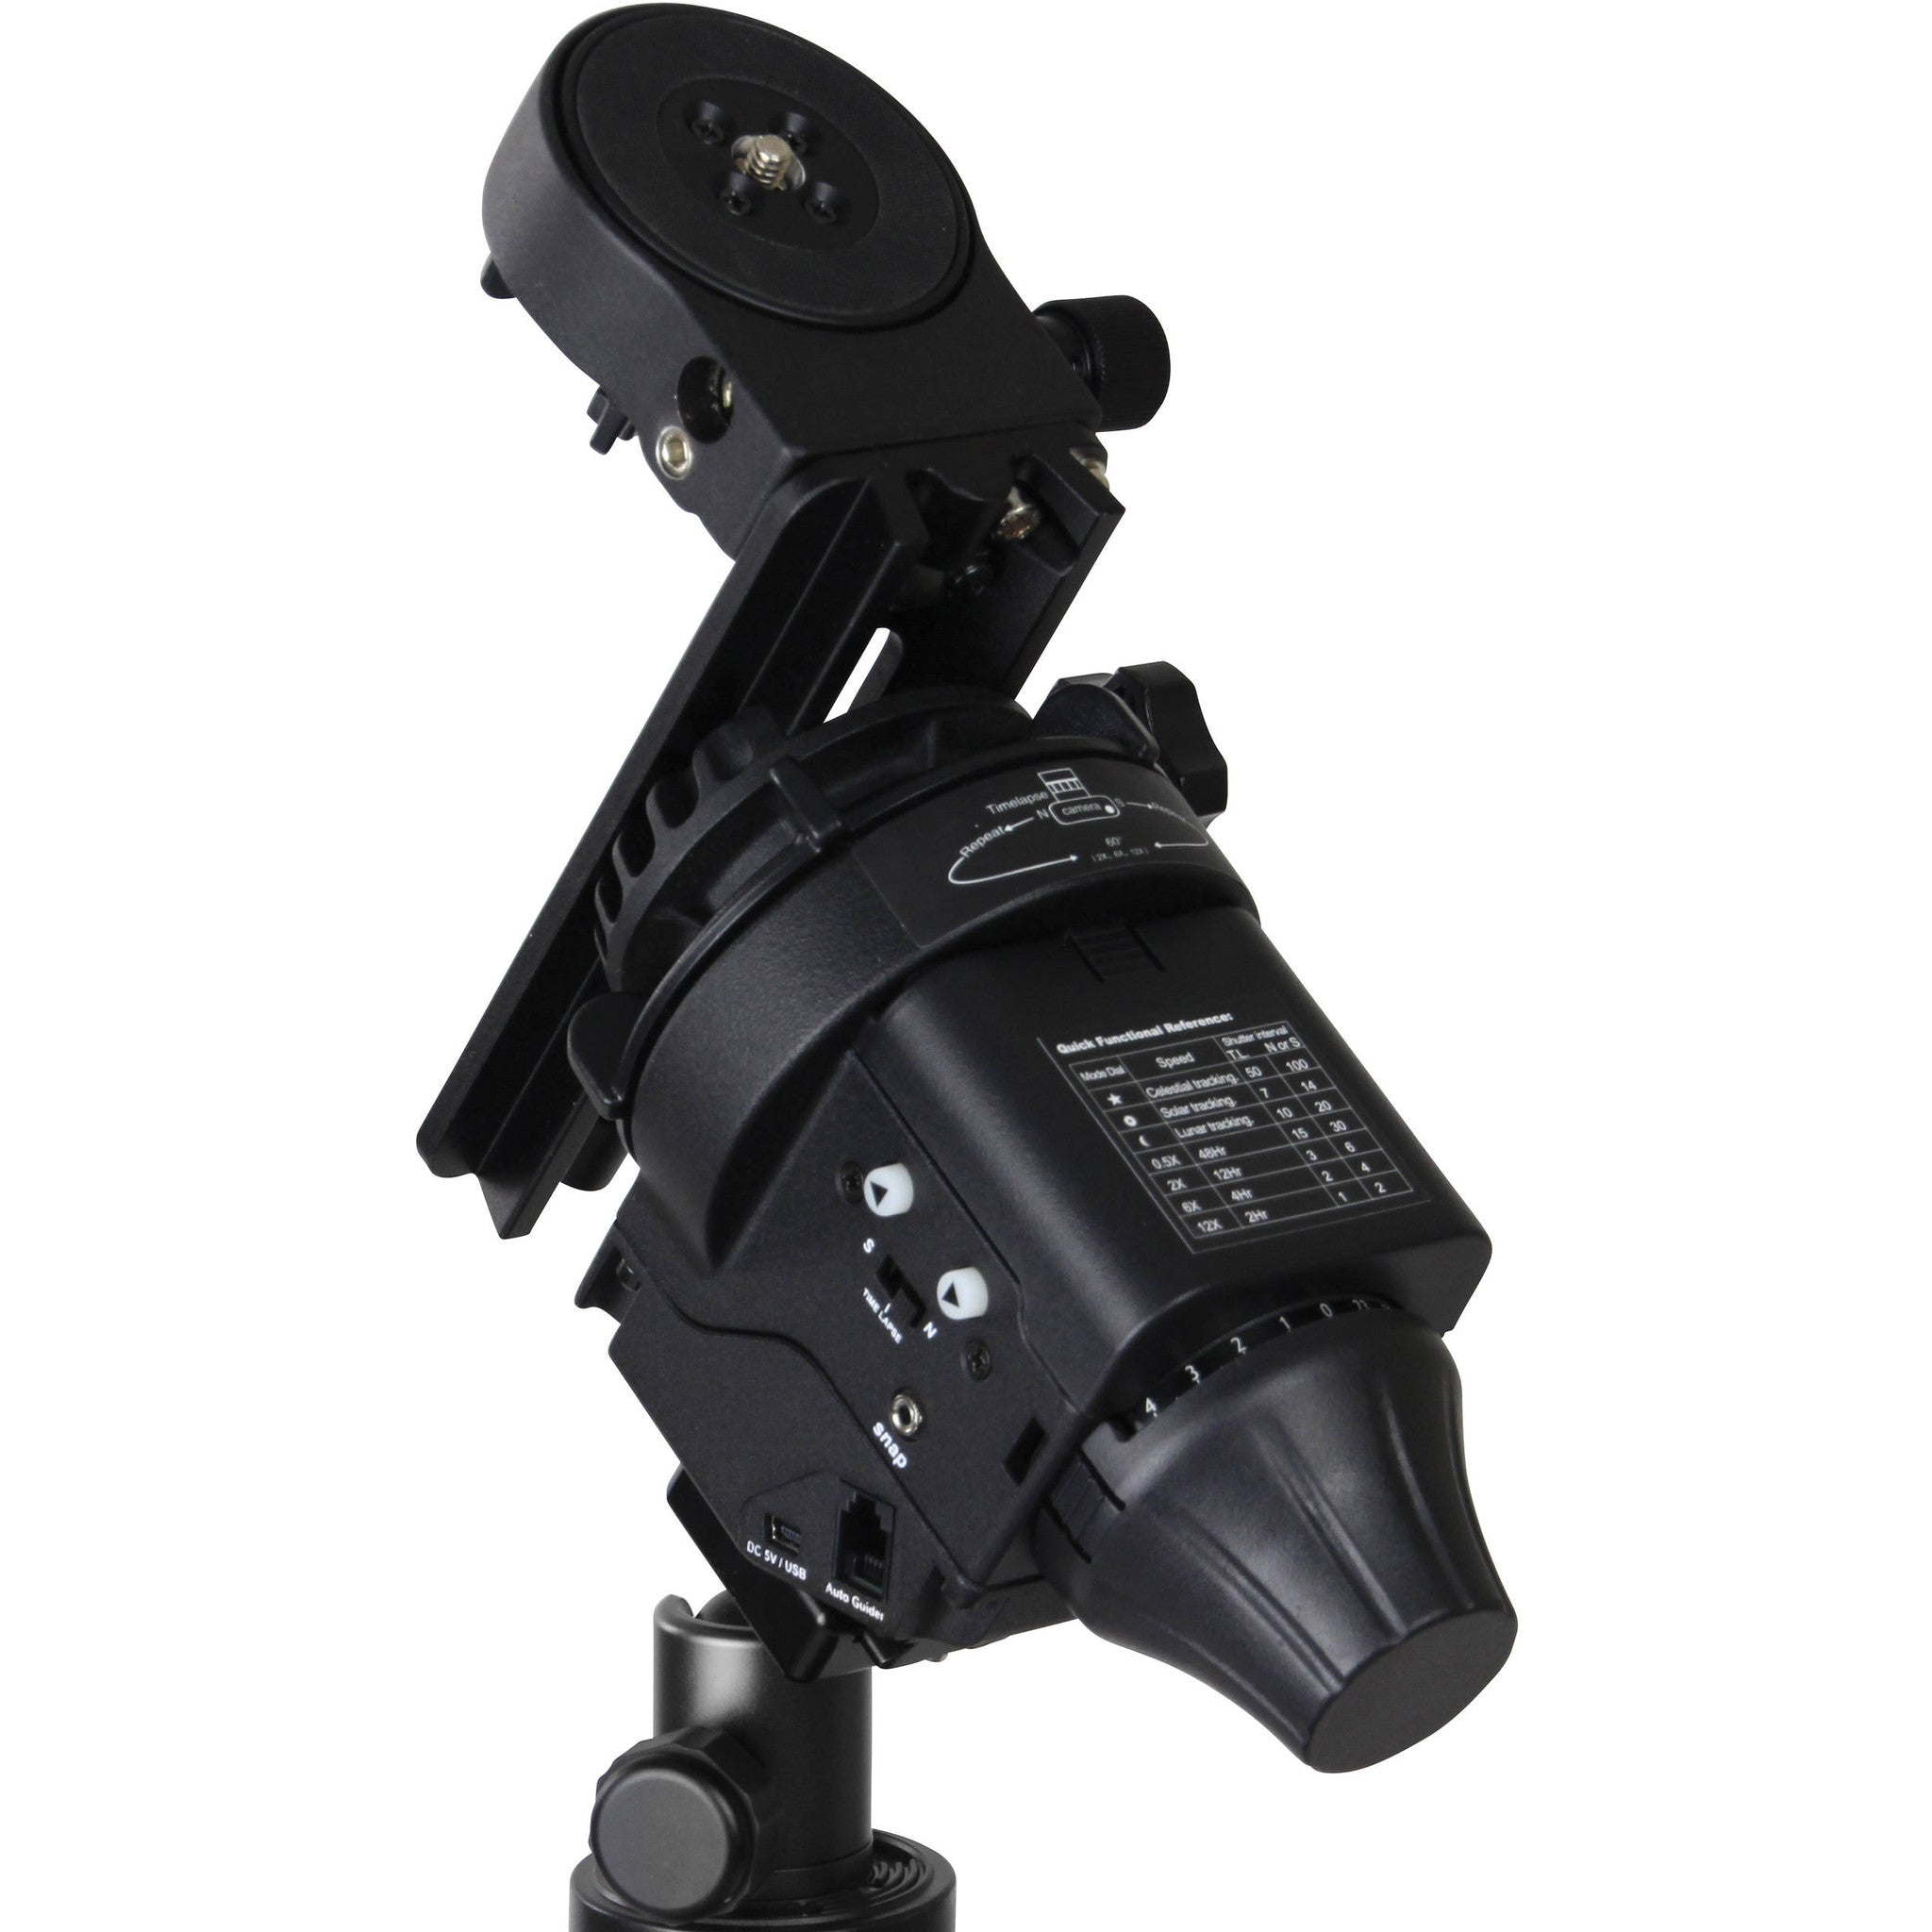 Sky-Watcher Star Adventurer Motorized Mount Astro Package